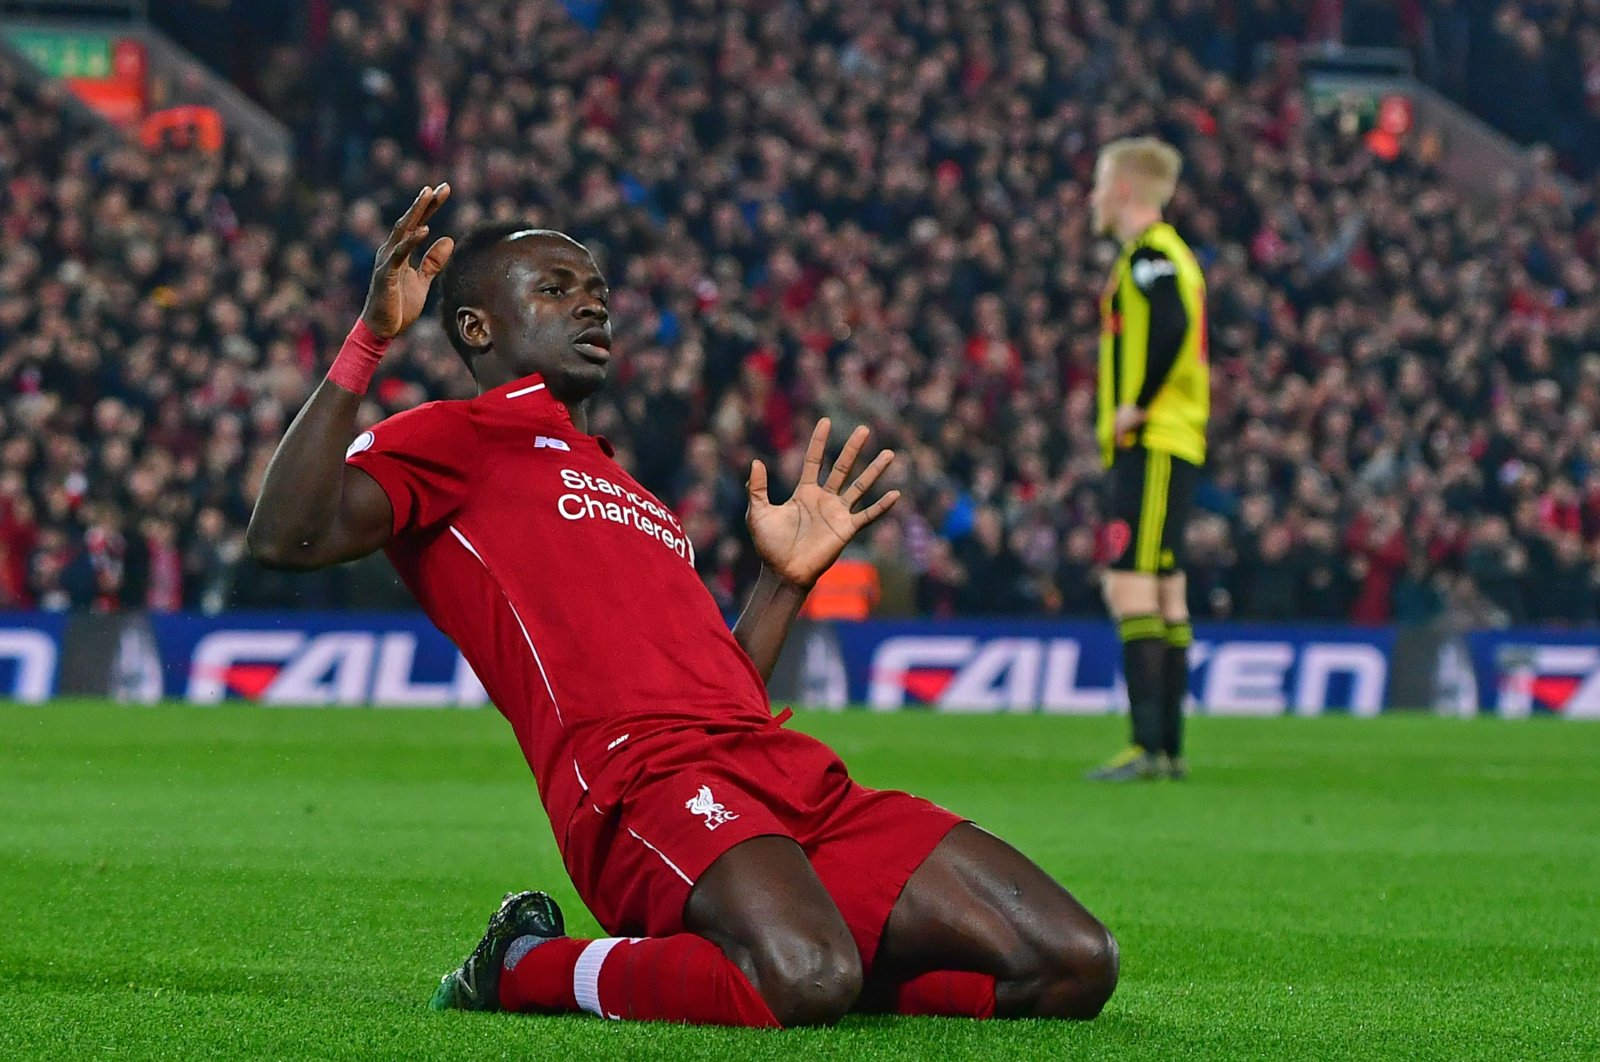 In this file photo taken on February 27, 2019 Liverpool's Senegalese striker Sadio Mane celebrates after scoring the opening goal of the English Premier League football match between Liverpool and Watford at Anfield in Liverpool, northwest England. (AFP Photo)